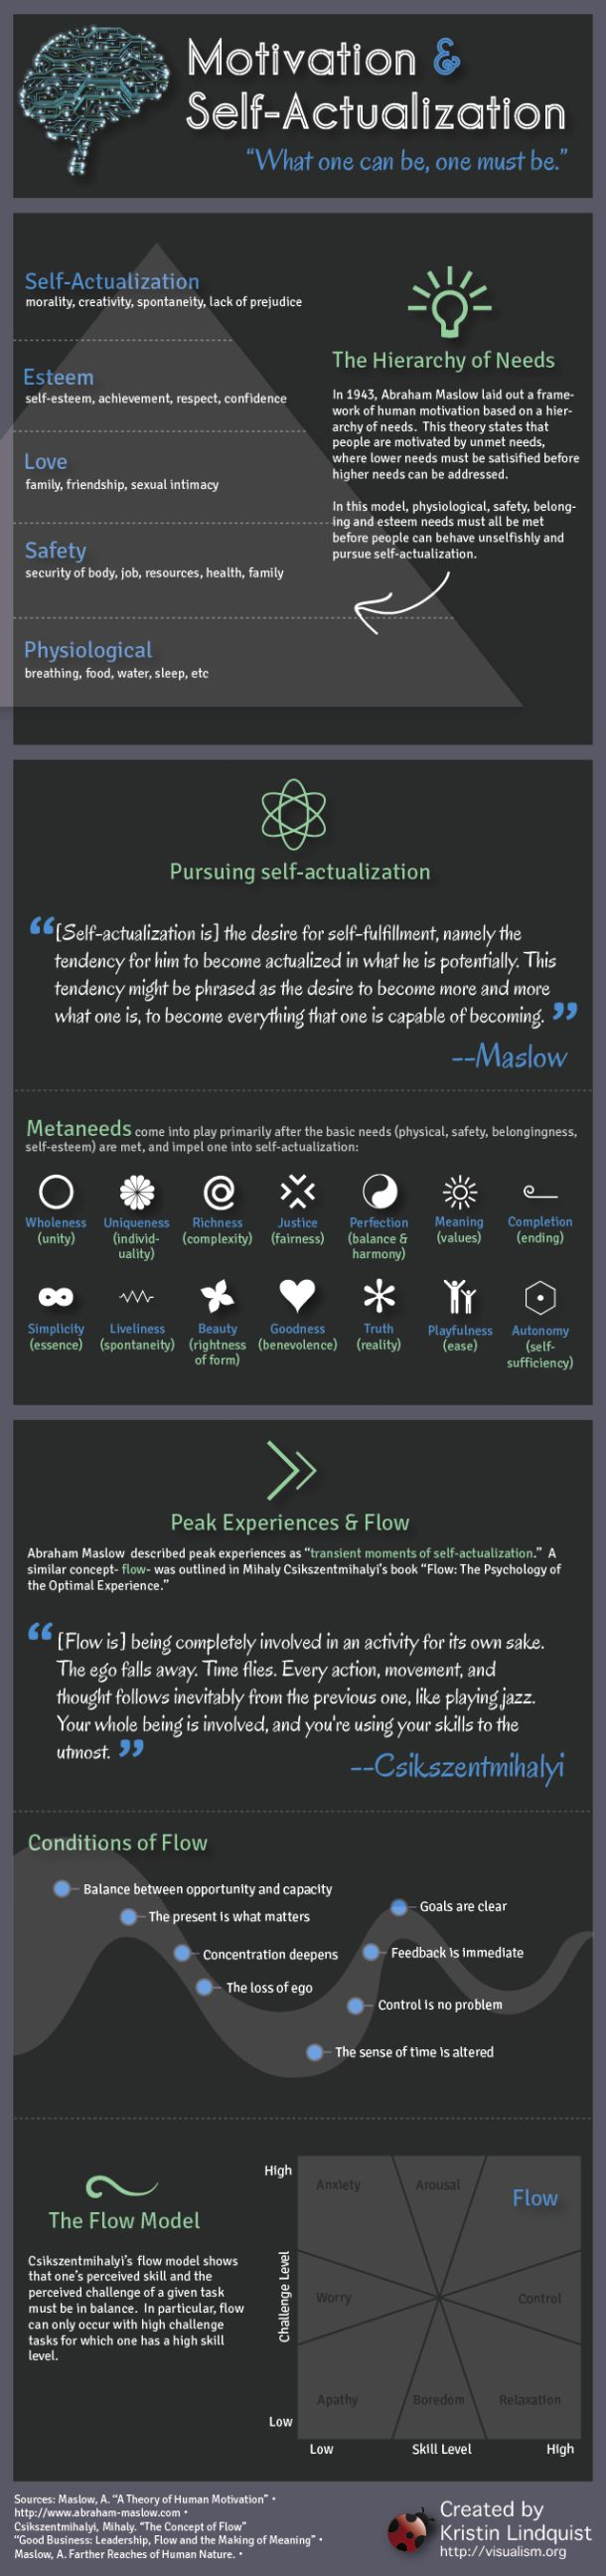 """Doing the bull dance; feeling the flow""  Motivation & Self-Actualization [INFOGRAPHIC"